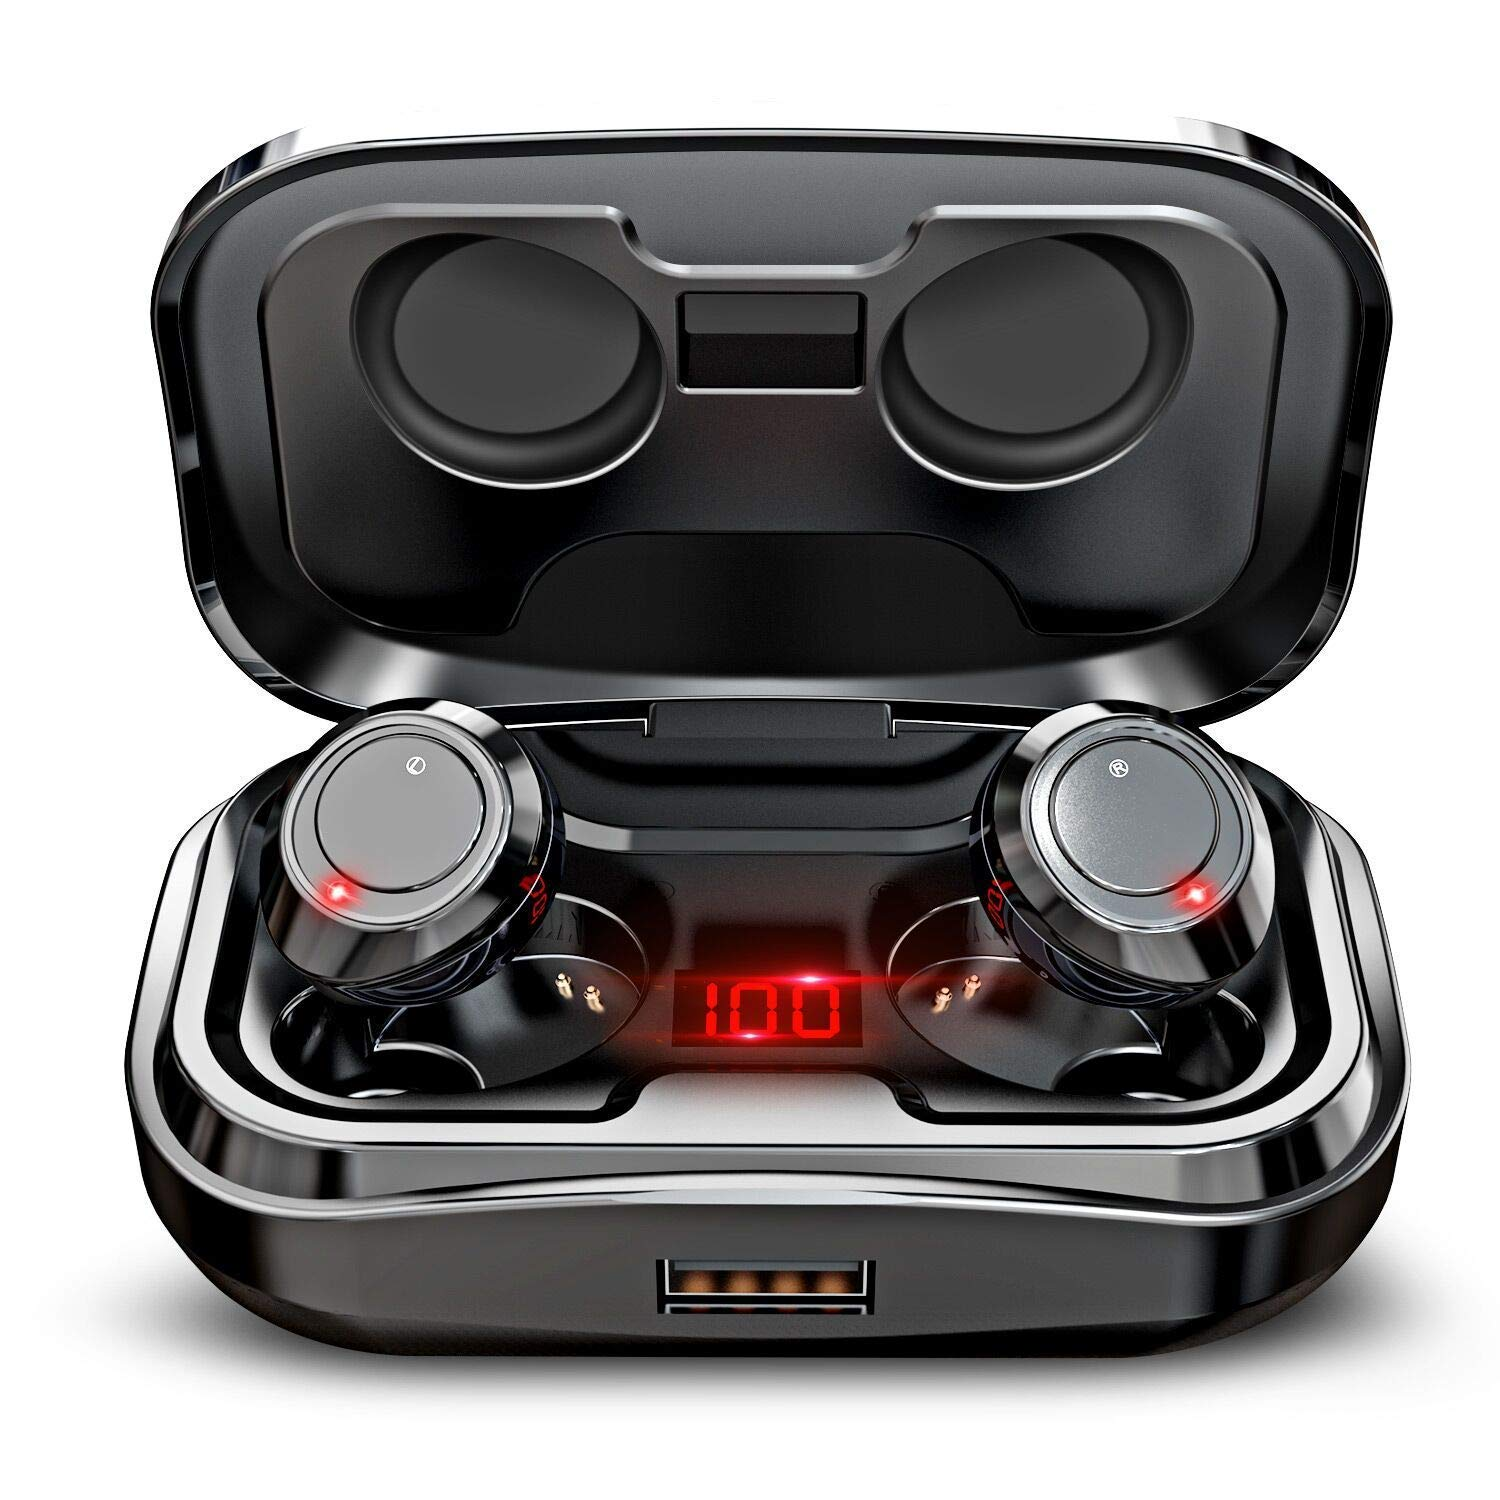 GRDE X10 TWS Wireless Earbuds, Bluetooth 5.0 Headphones 105H Playtime with 3000 mAh Charging Case [As Power Bank], Stereo Auto Pairing in-Ear Bluetooth Earphones with Mic Wireless Headset 2019 by GRDE